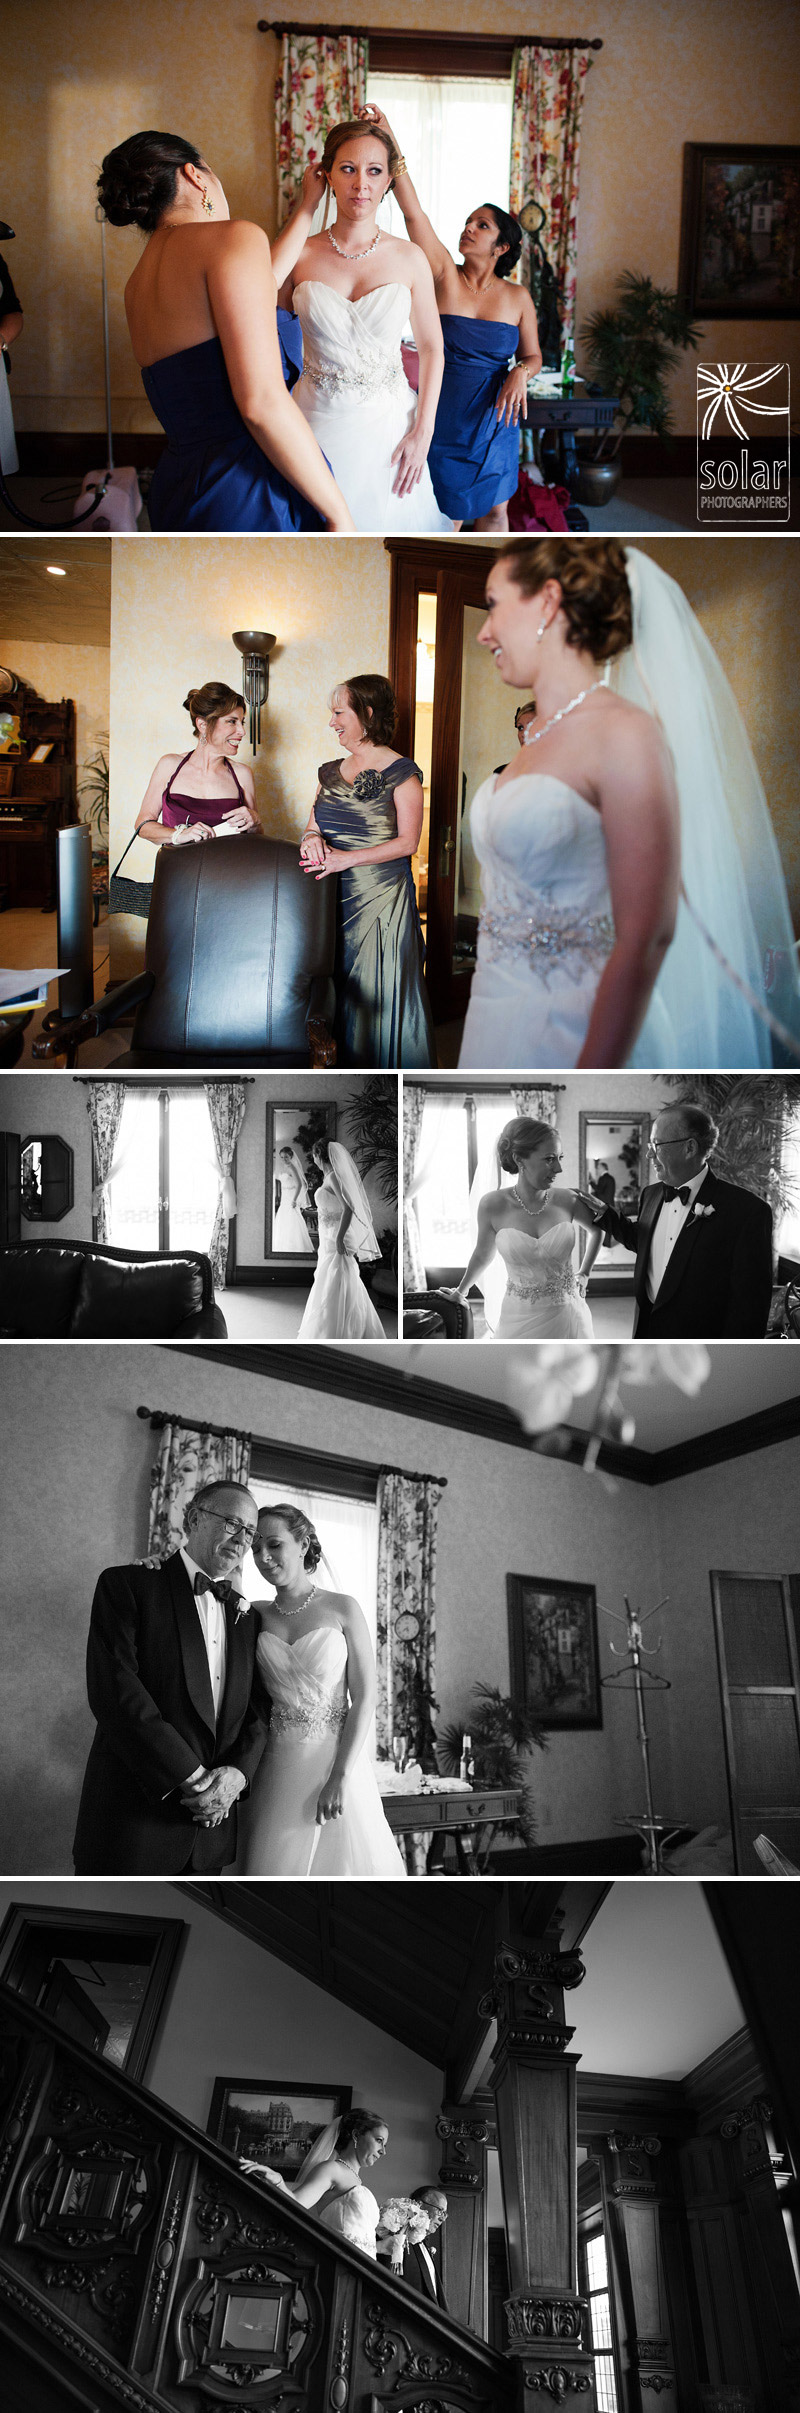 Emotional wedding pictures.